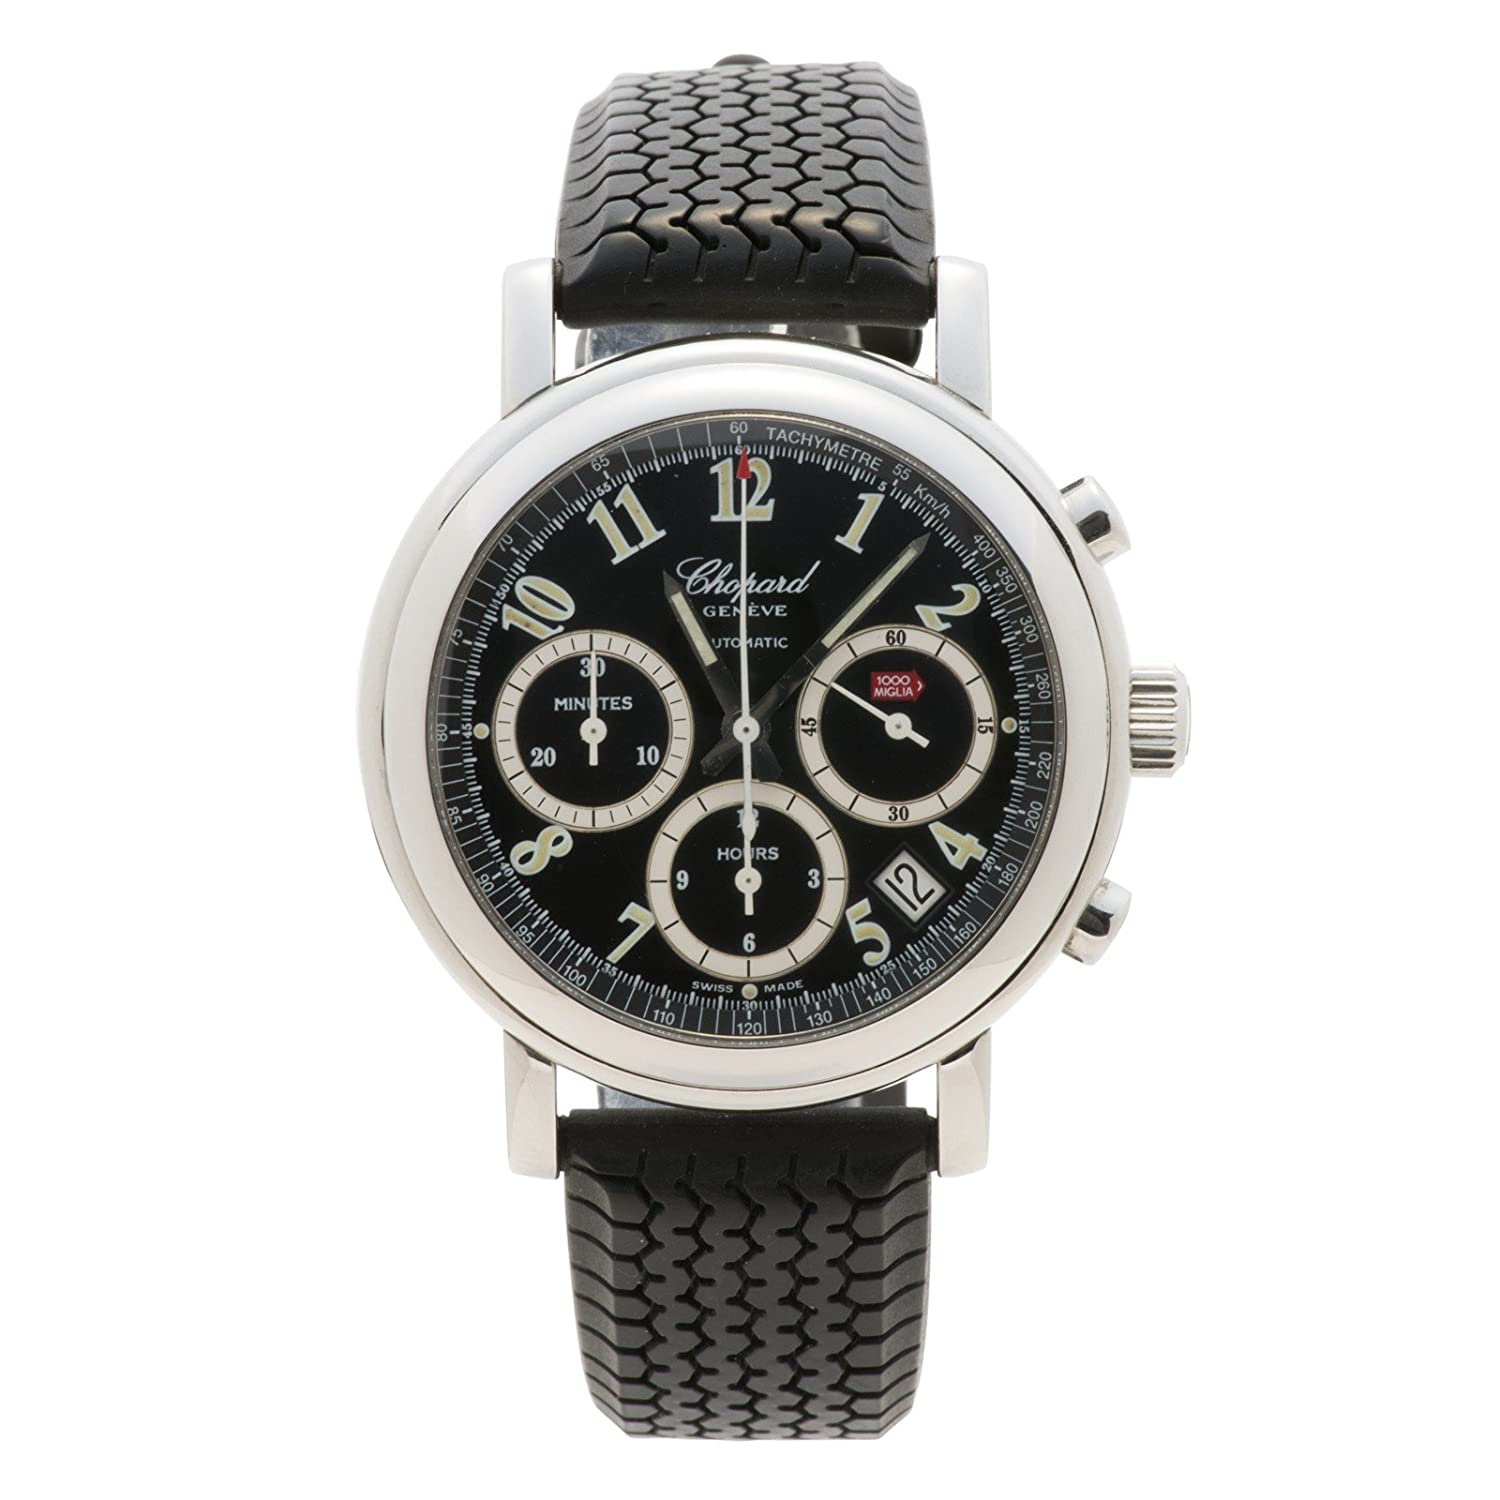 08e39dcf8 Chopard Mille Miglia automatic-self-wind mens Watch 8331 (Certified  Pre-owned): Chopard: Amazon.ca: Watches